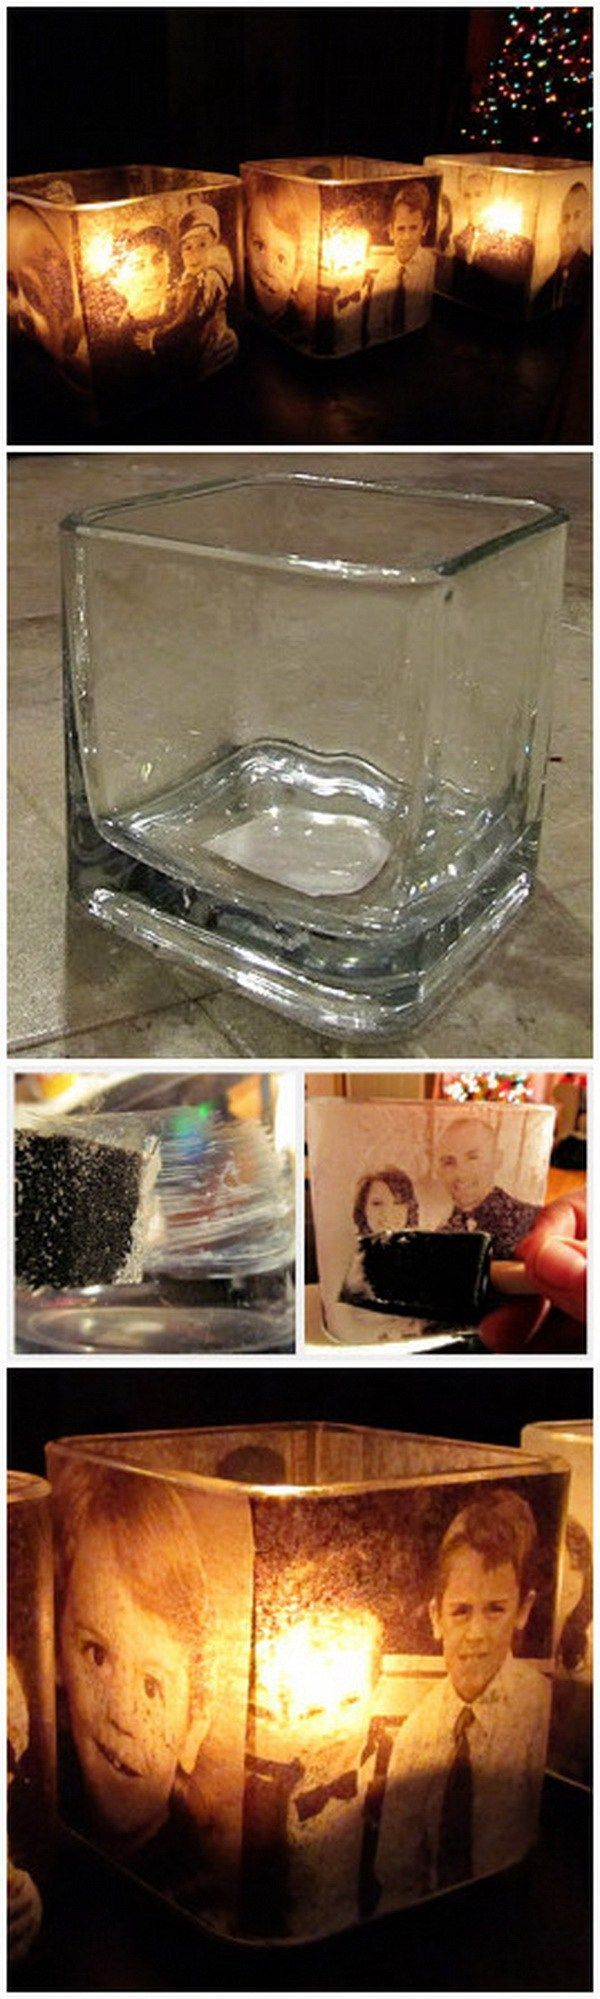 DIY Glowing Photo Candle Holders. A great way to display your loved photos with htis creative project! Also make great gifts for your family!